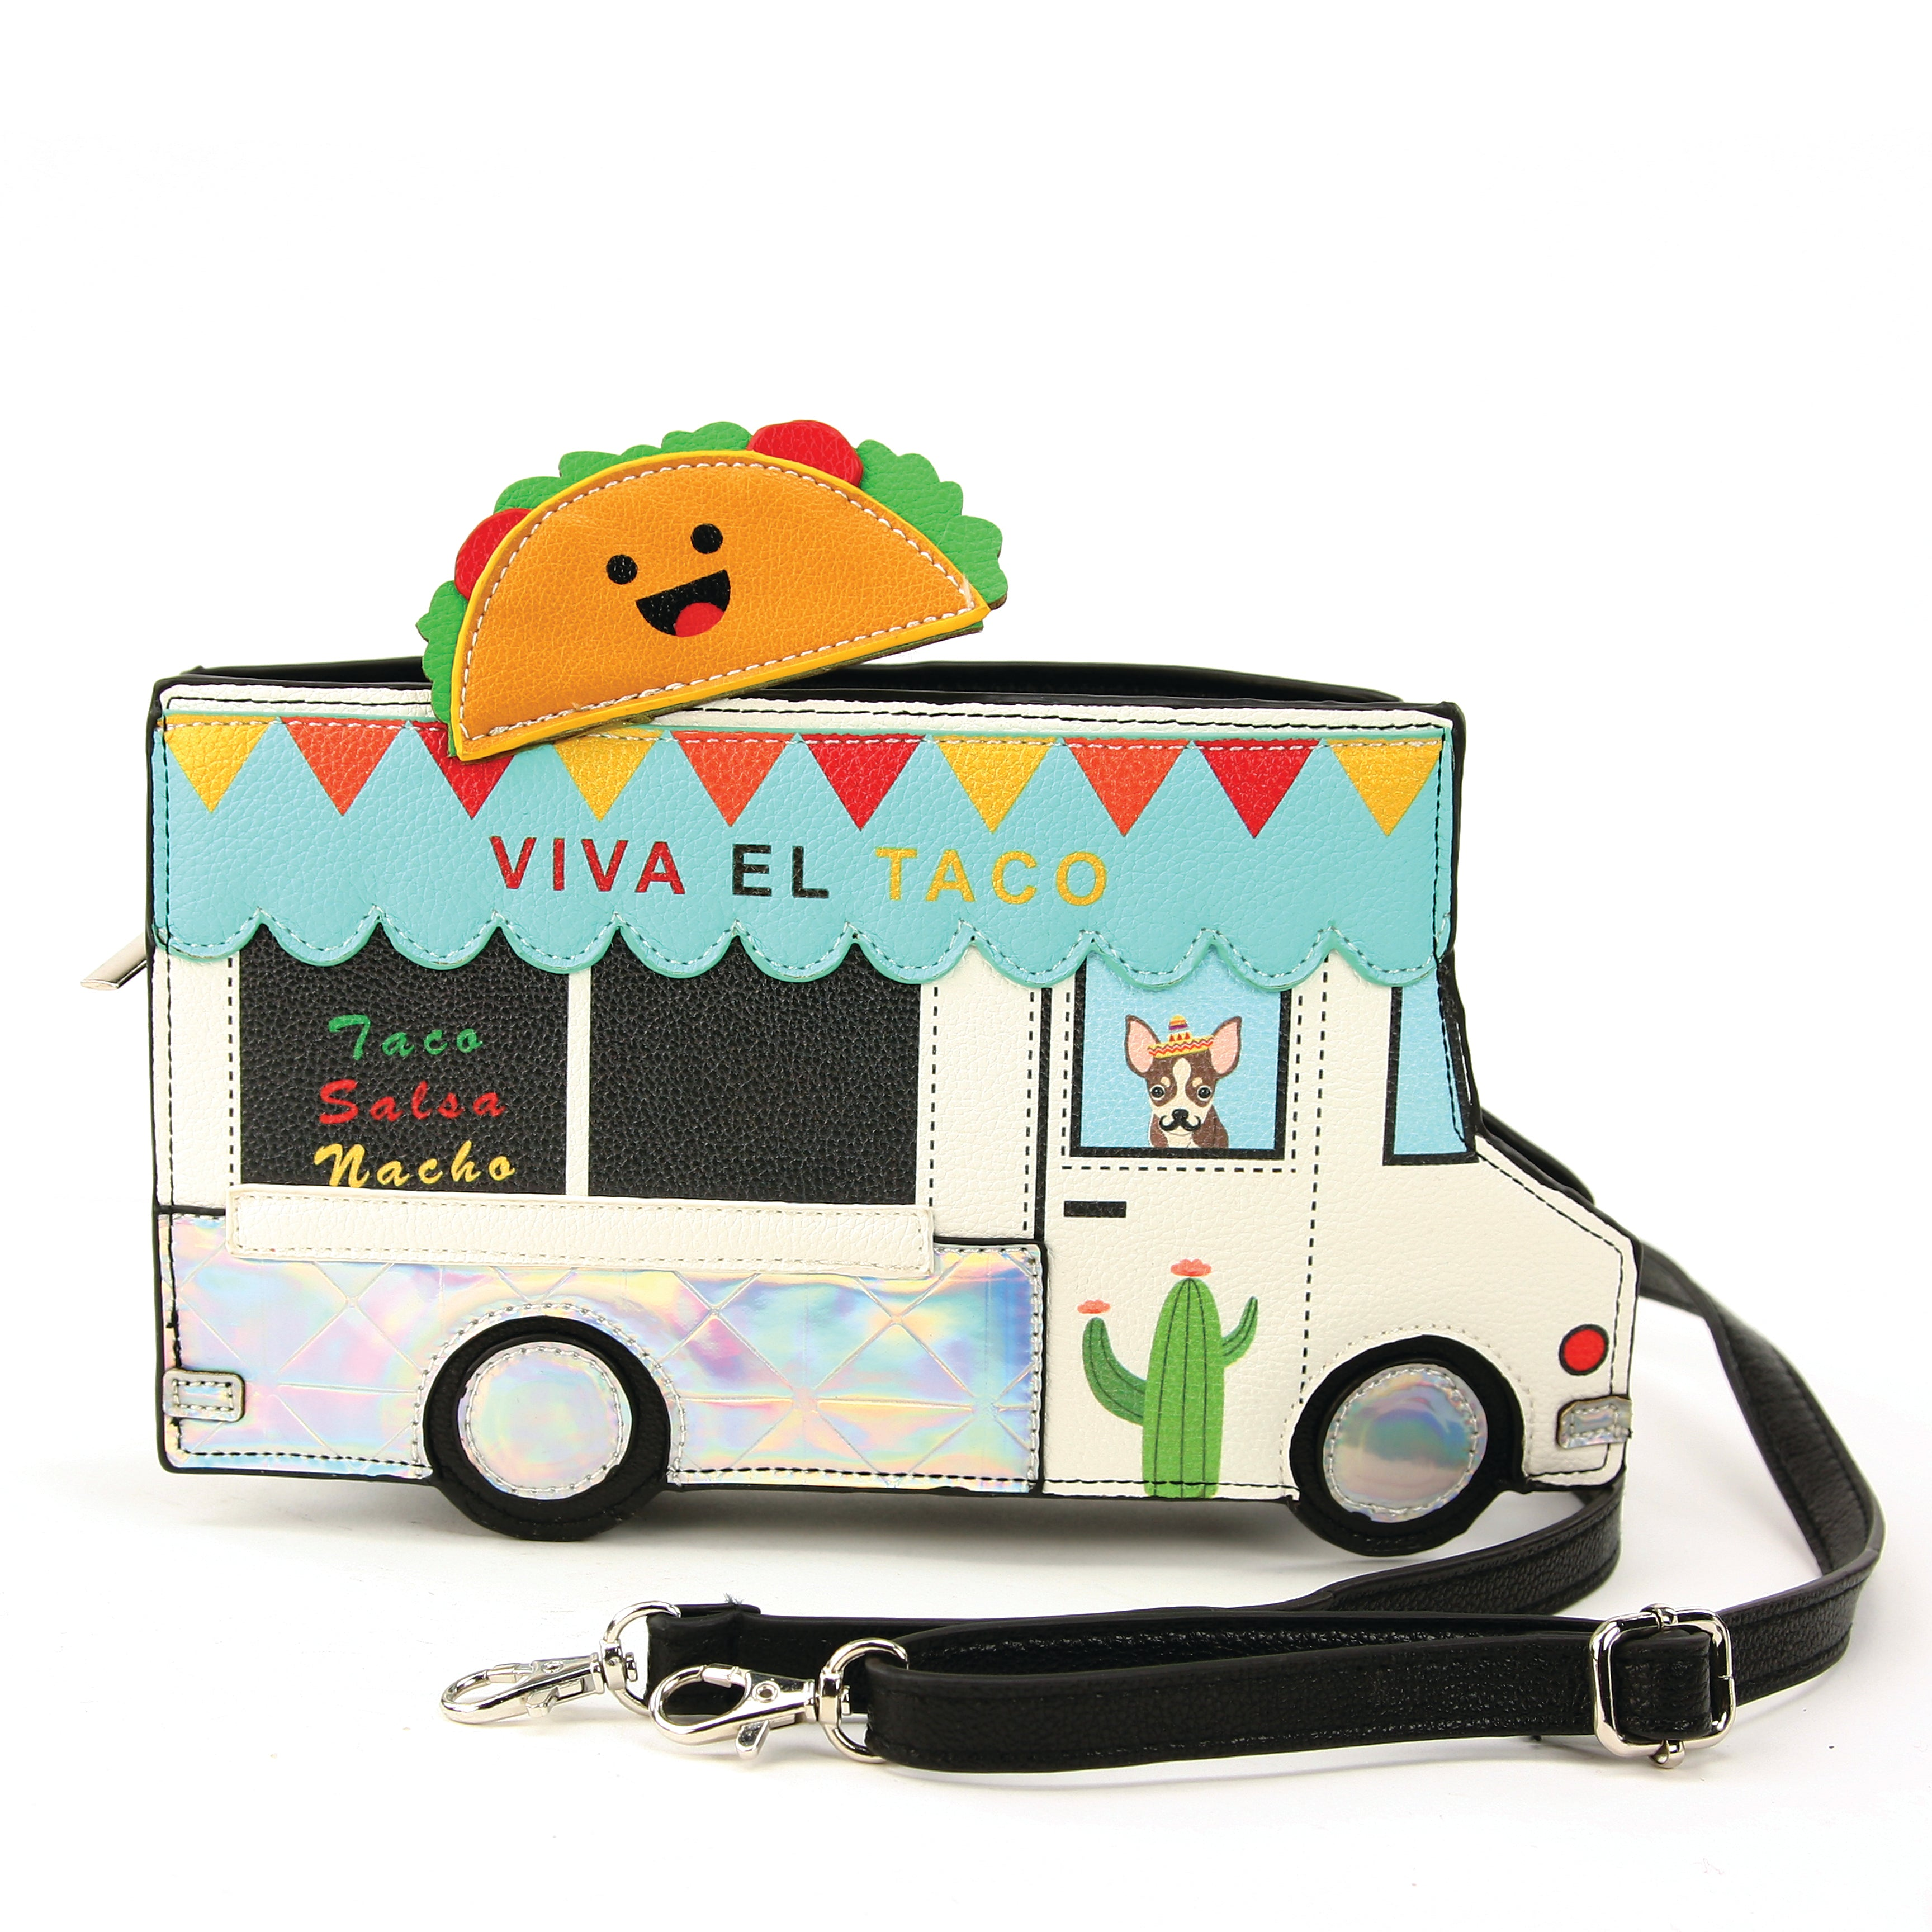 Taco Truck Cross Body Bag in Vinyl Material front view